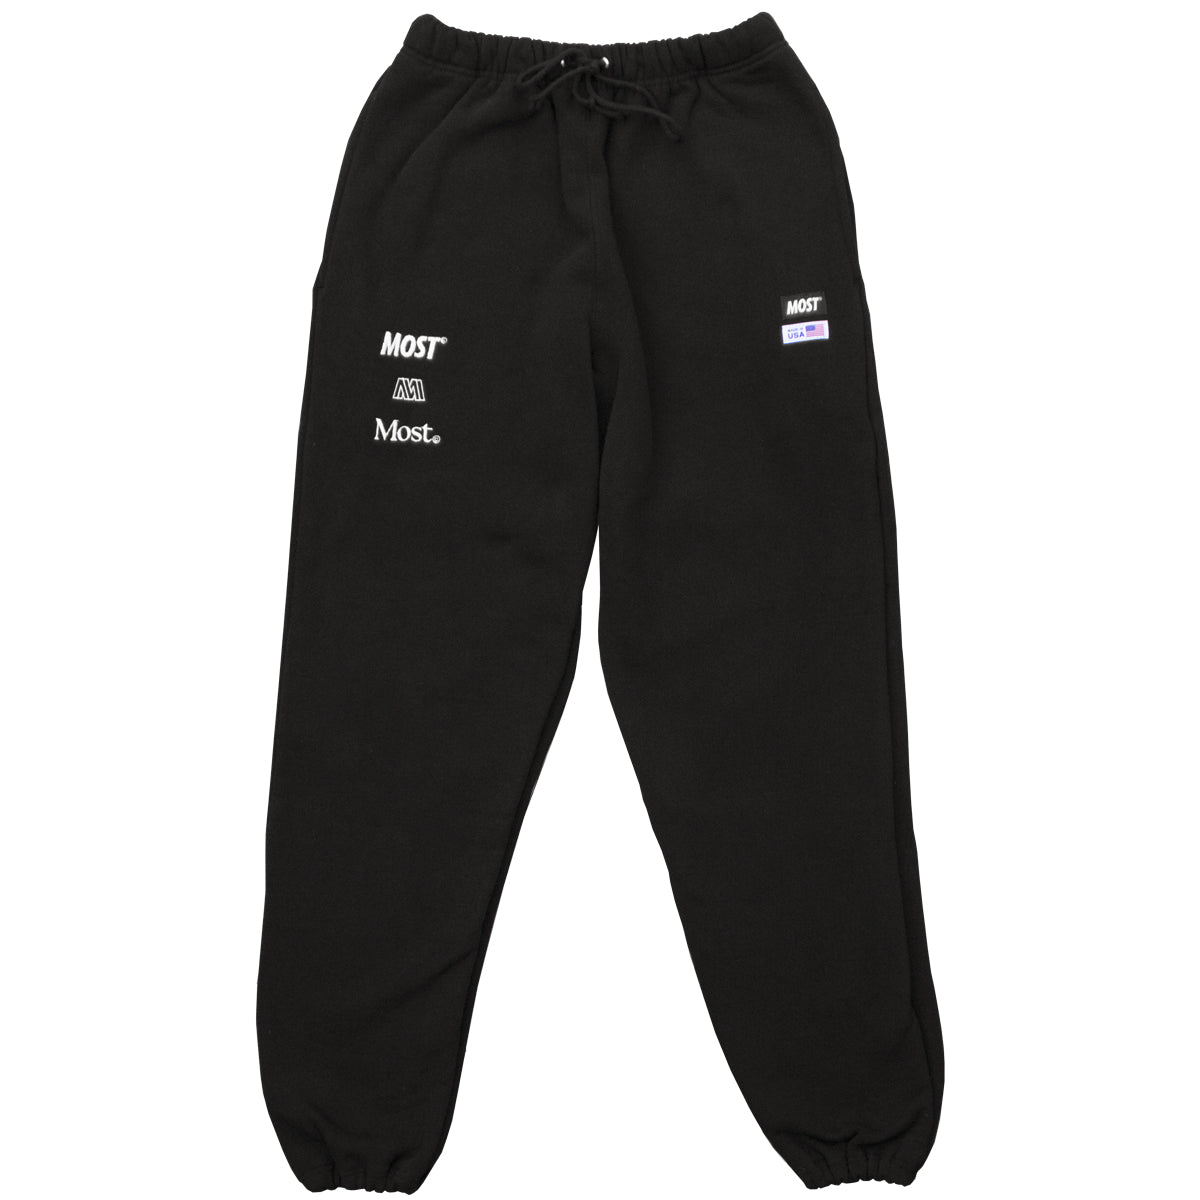 Made in USA Sweatpant - Black